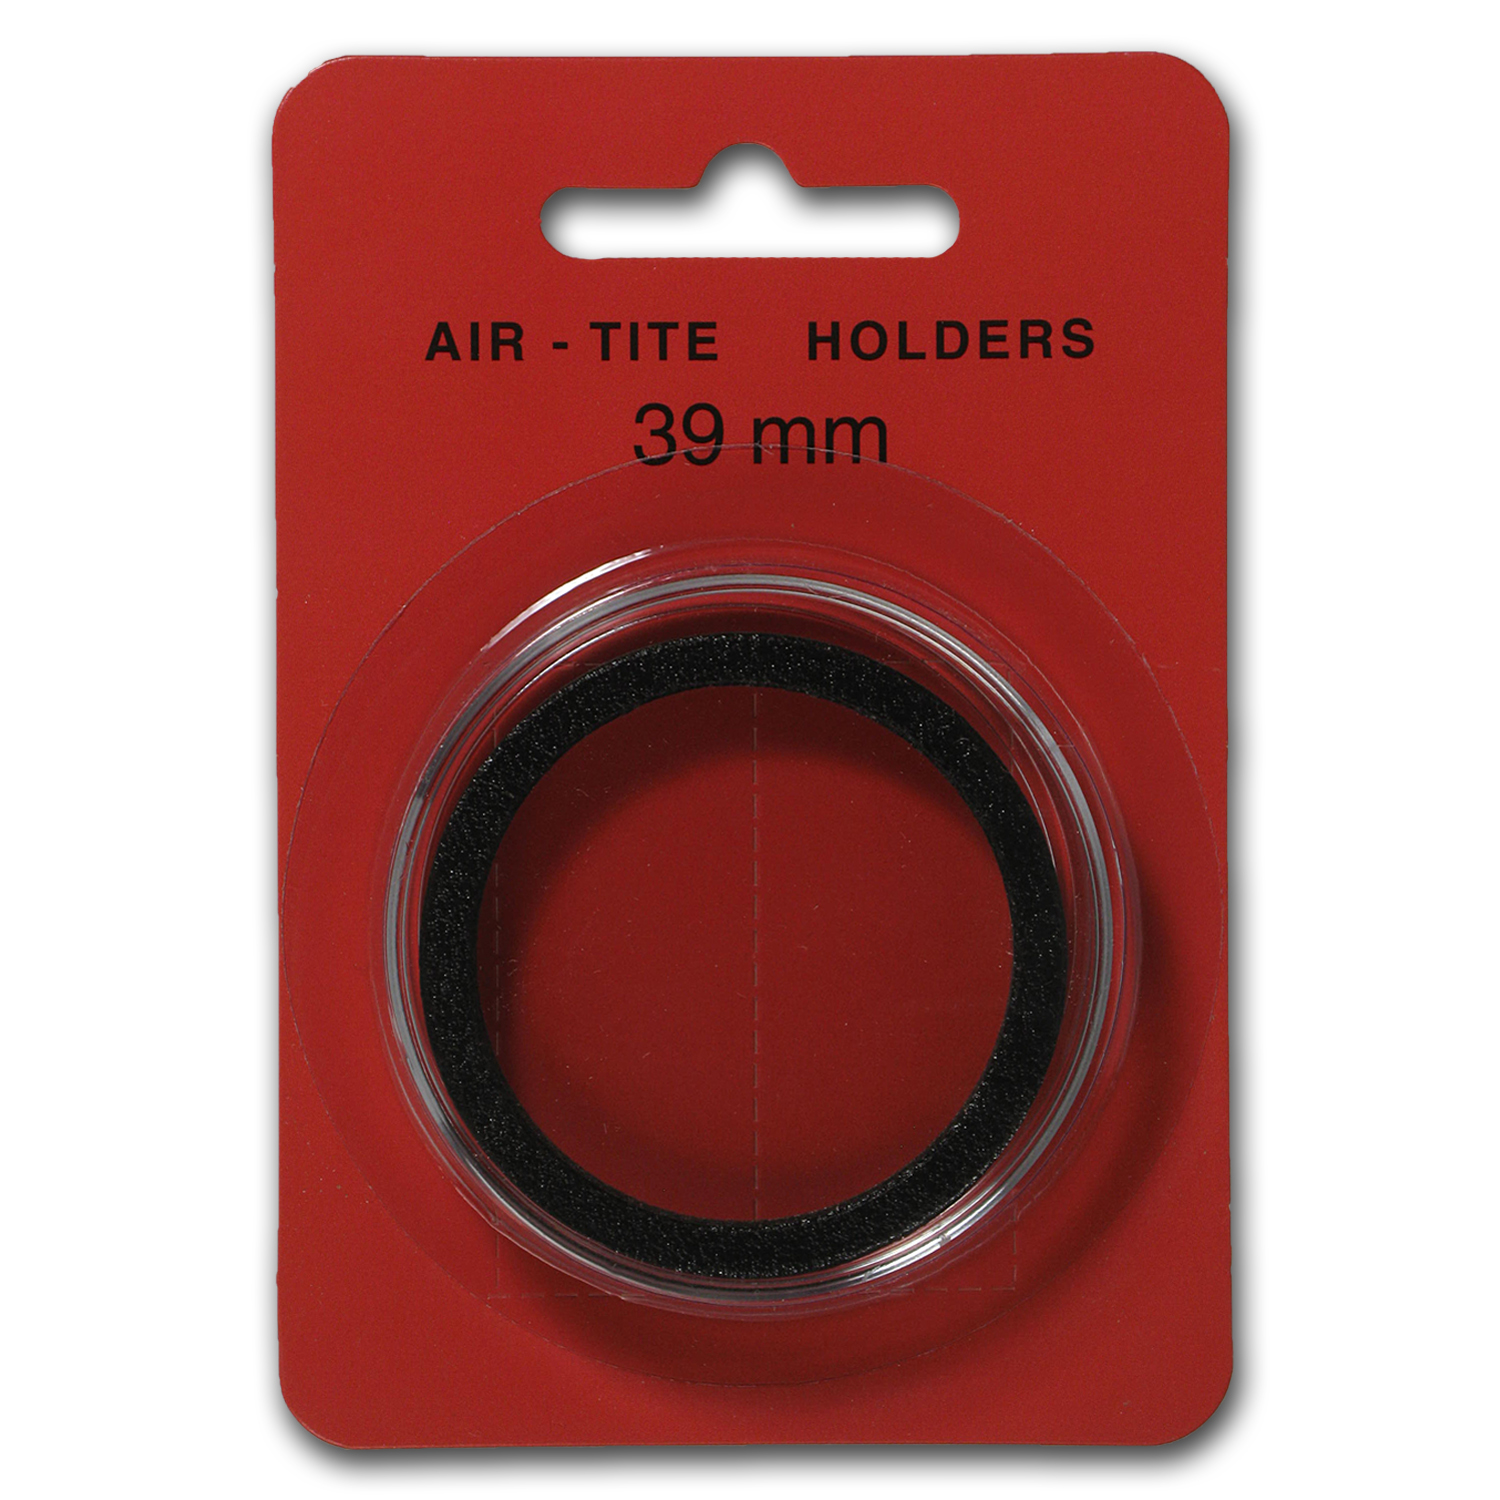 Air-Tite Holder w/ Black Gasket - 39 mm